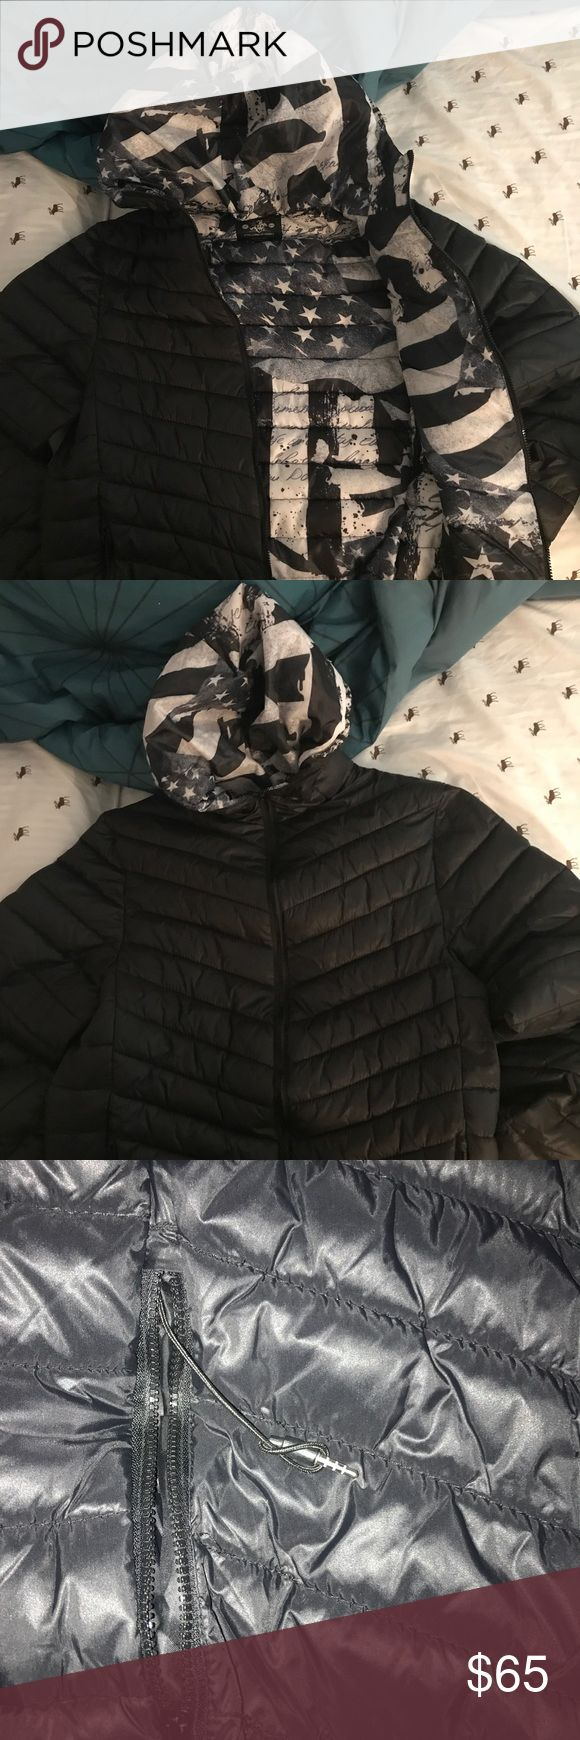 Mens Jacket w/Headphone Jack !! Lightweight, puffer jacket for men. Has very stylish black and white interior. Comes with a hood, and a headphone jack to listen to you music right in the comfort of your own coat! To plug them in your device is a photo shown with two circular locations at the top of the Jacket. Only worn once! Excellent condition! winchester Jackets & Coats Puffers